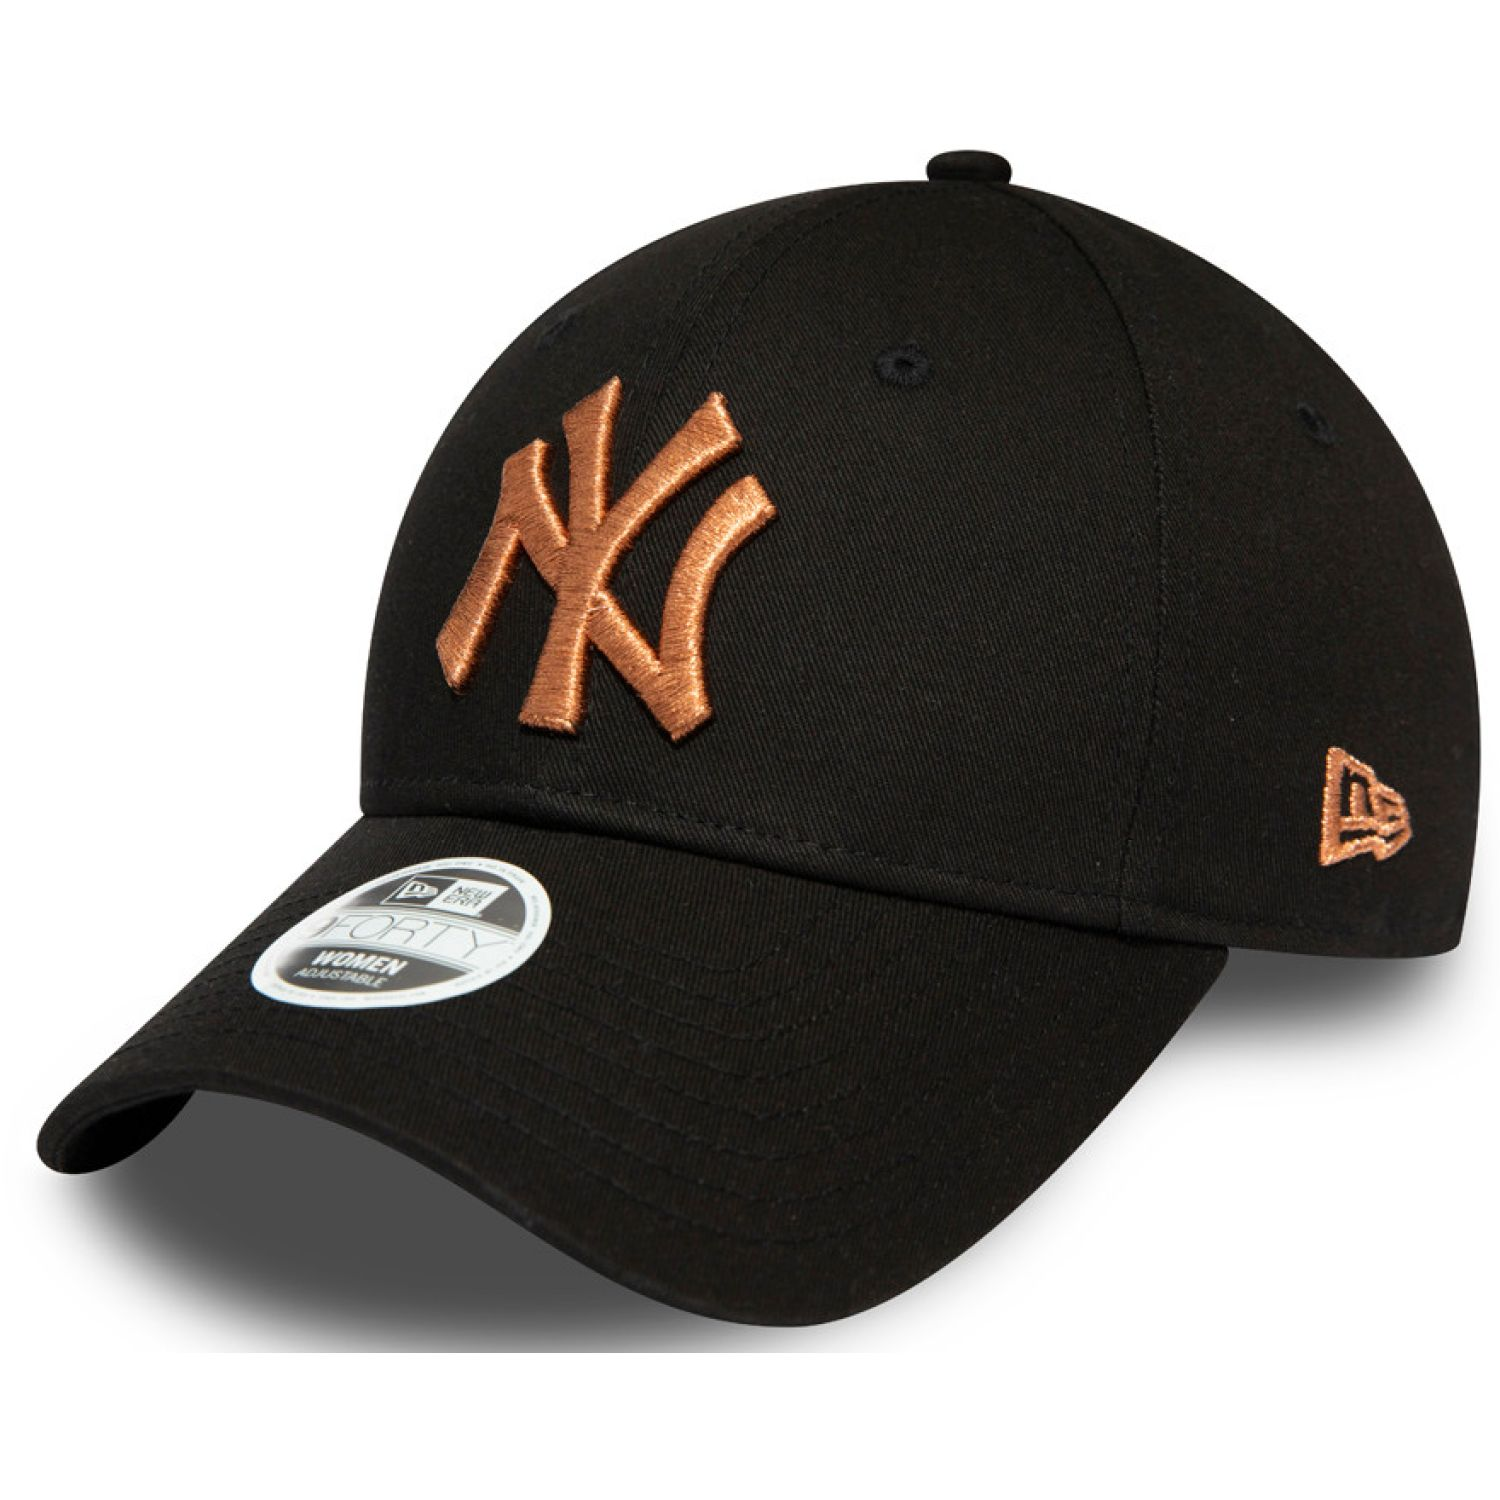 NEW ERA Wmns Metallic Logo 9forty Neyyan Blk Black Chullos y gorros